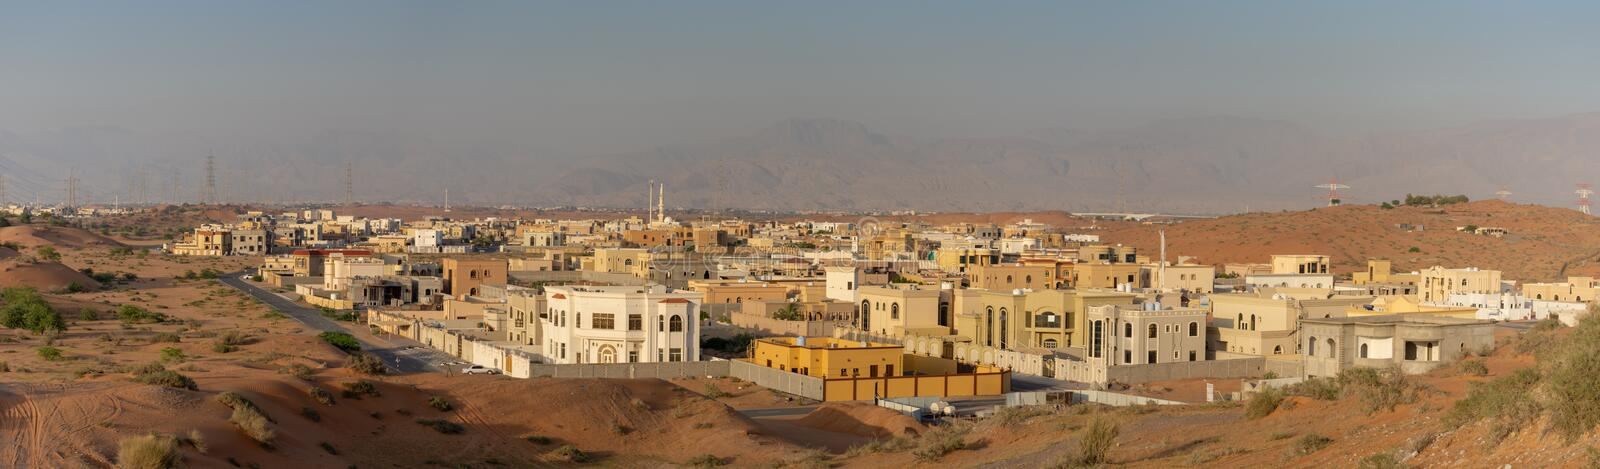 Panorma of residential area with construction in Ras al Khaimah, United Arab Emirates UAE. Ras al Khaimah, RAK/ United Arab Emirates - 5/2/2019: Panorama of royalty free stock photo